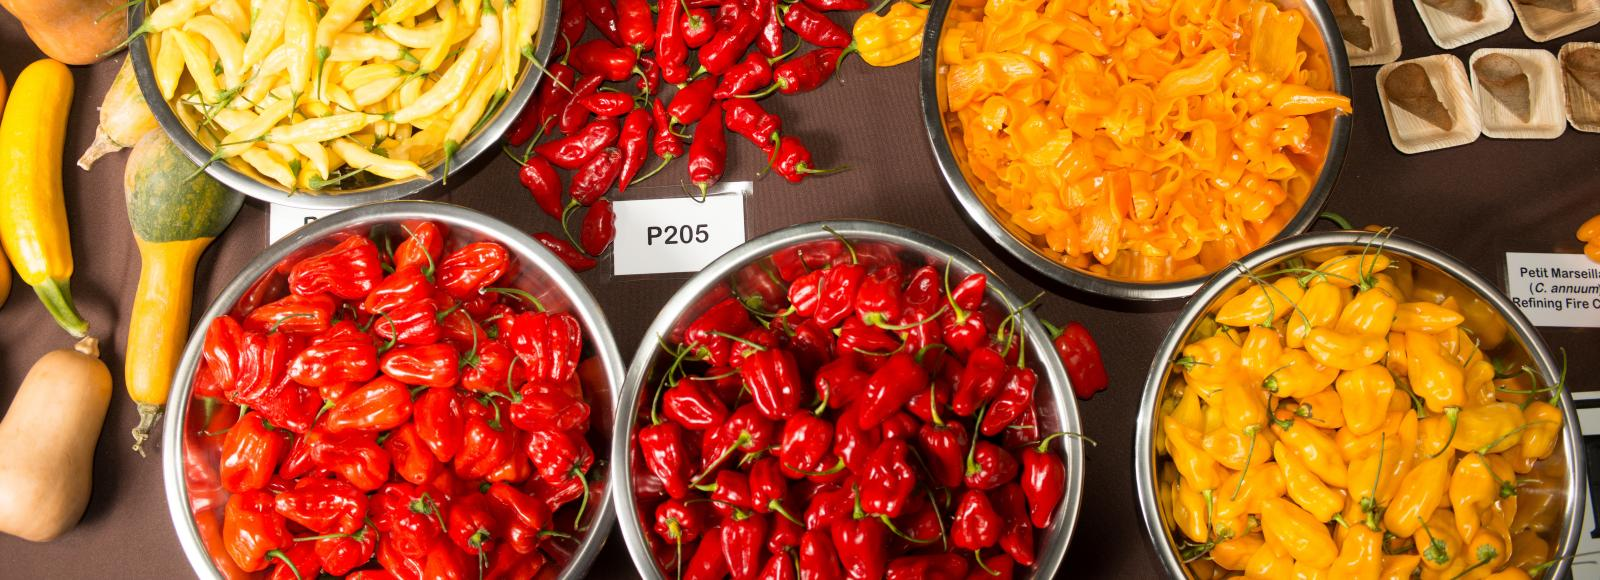 Sweet habanero varieties in bowls, ranging in color from deep red to orange to yellow